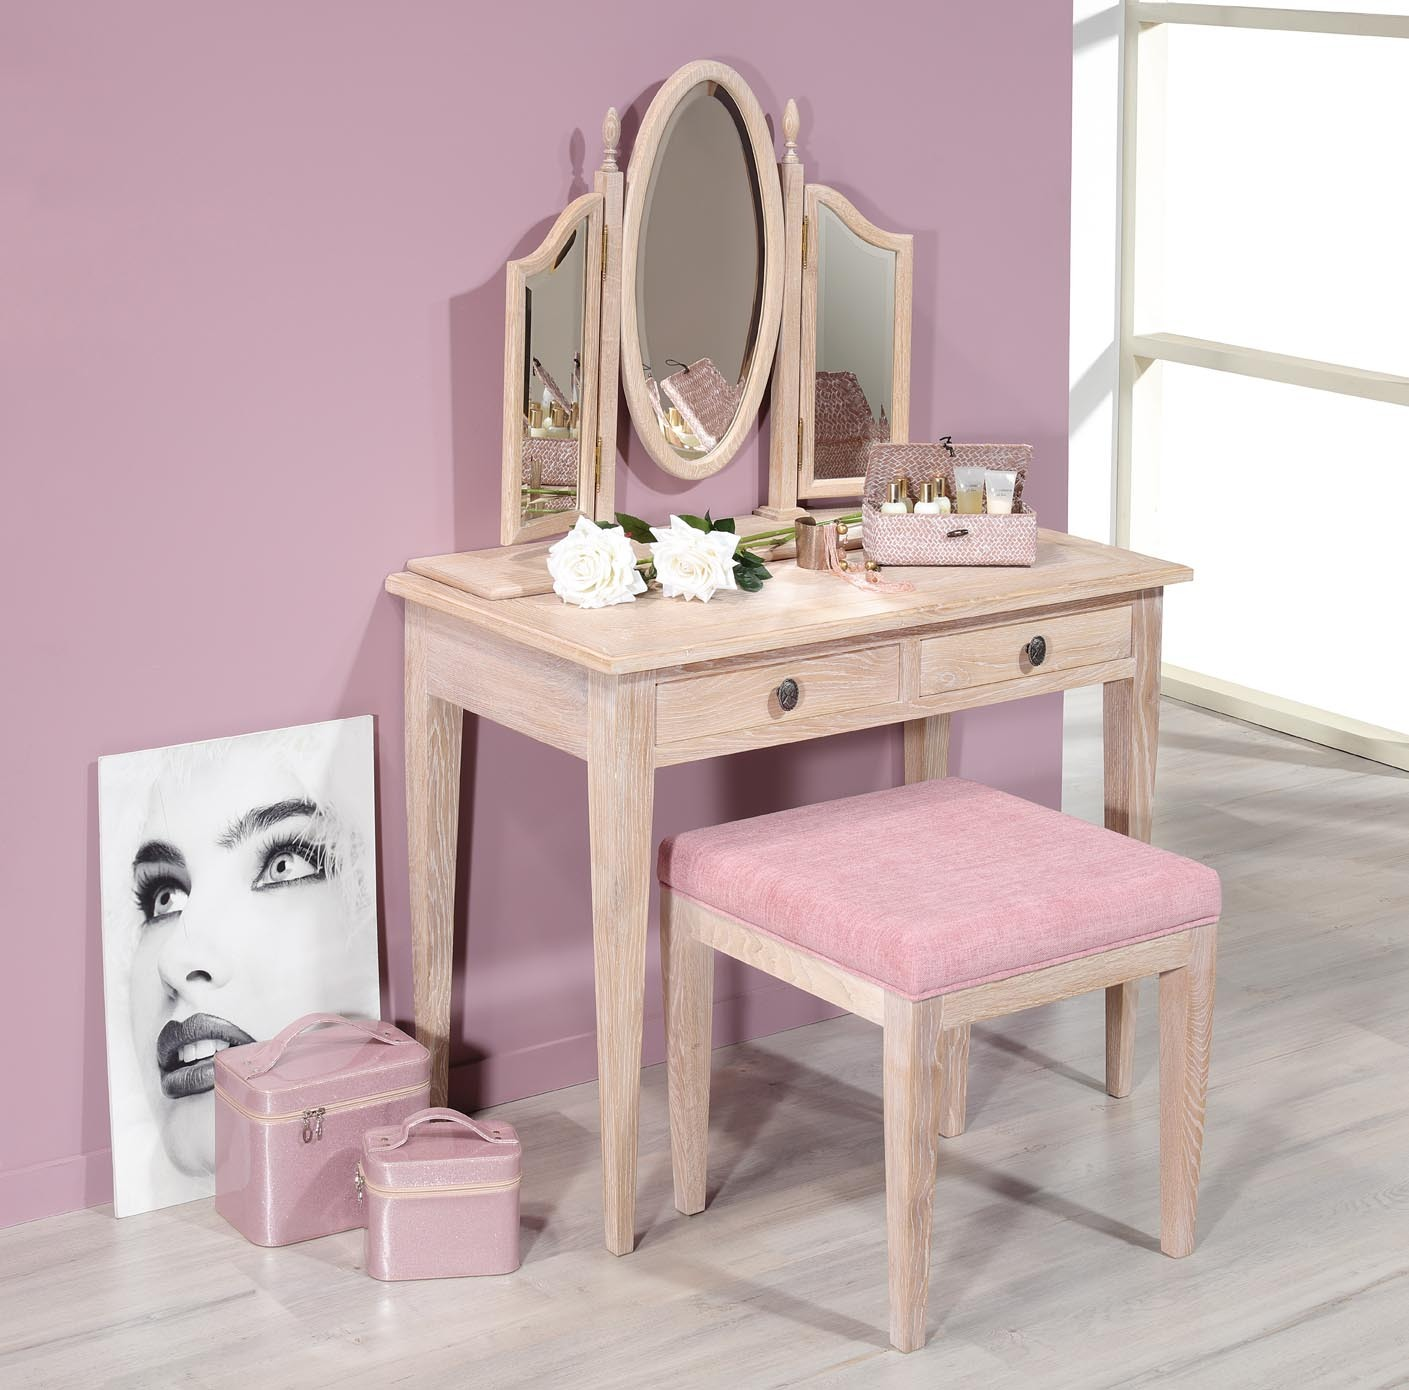 table de toilette ou coiffeuse coralie en ch ne de style louis philippe finition ch ne bross. Black Bedroom Furniture Sets. Home Design Ideas